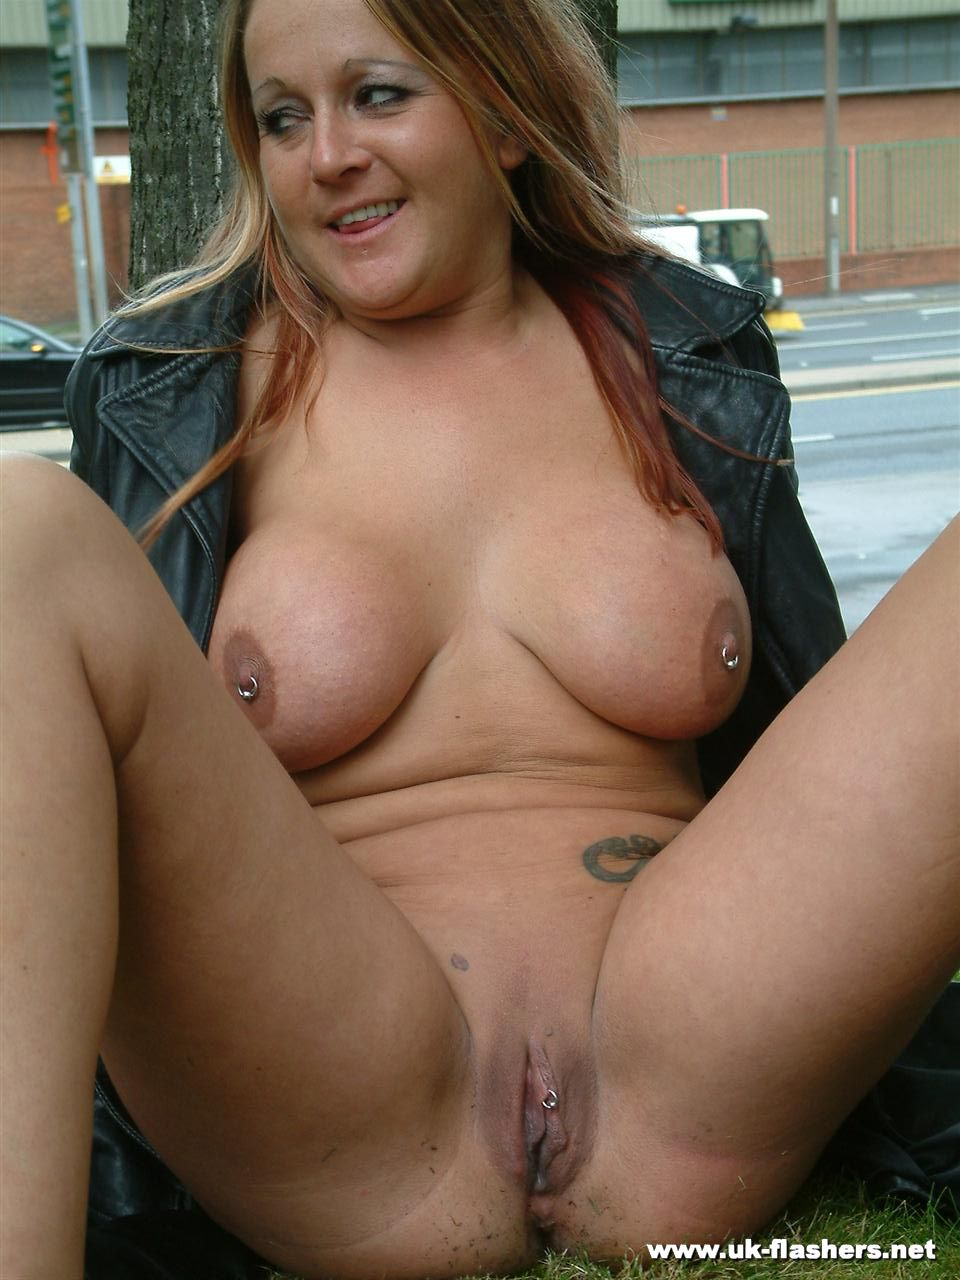 To see more exclusive videos and photos of the wildest public nudity ...